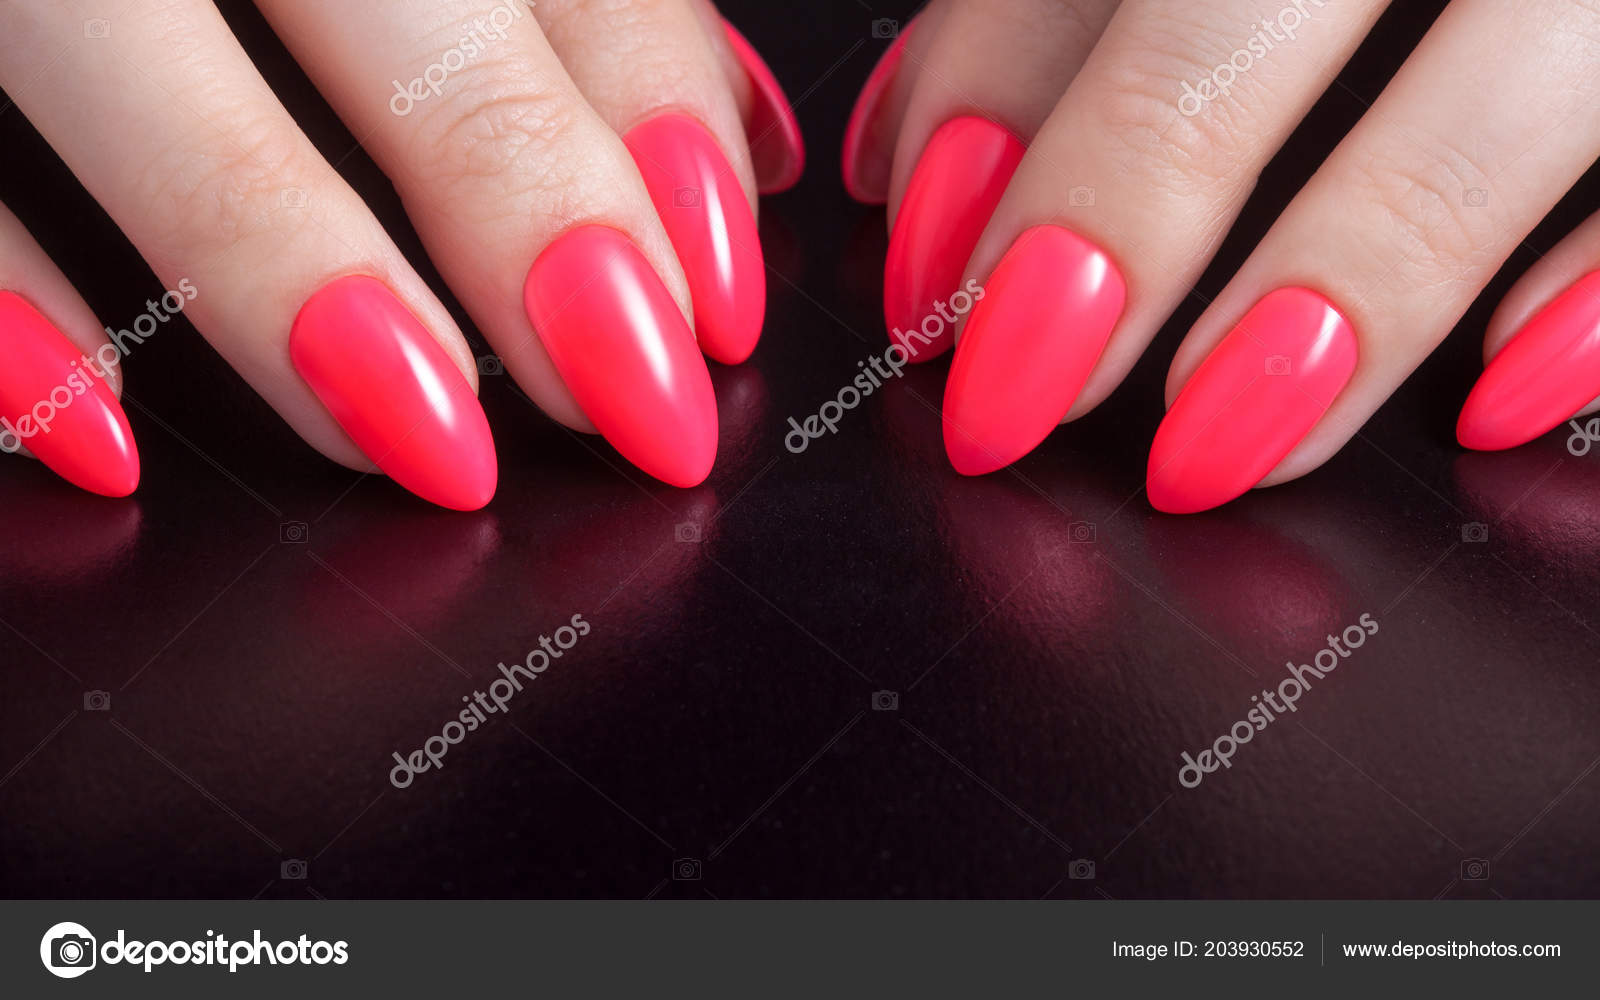 Women S Hands With Perfect Red Manicure Nail Polish Red Coral Color Black Background Stock Photo C Kriscole 203930552